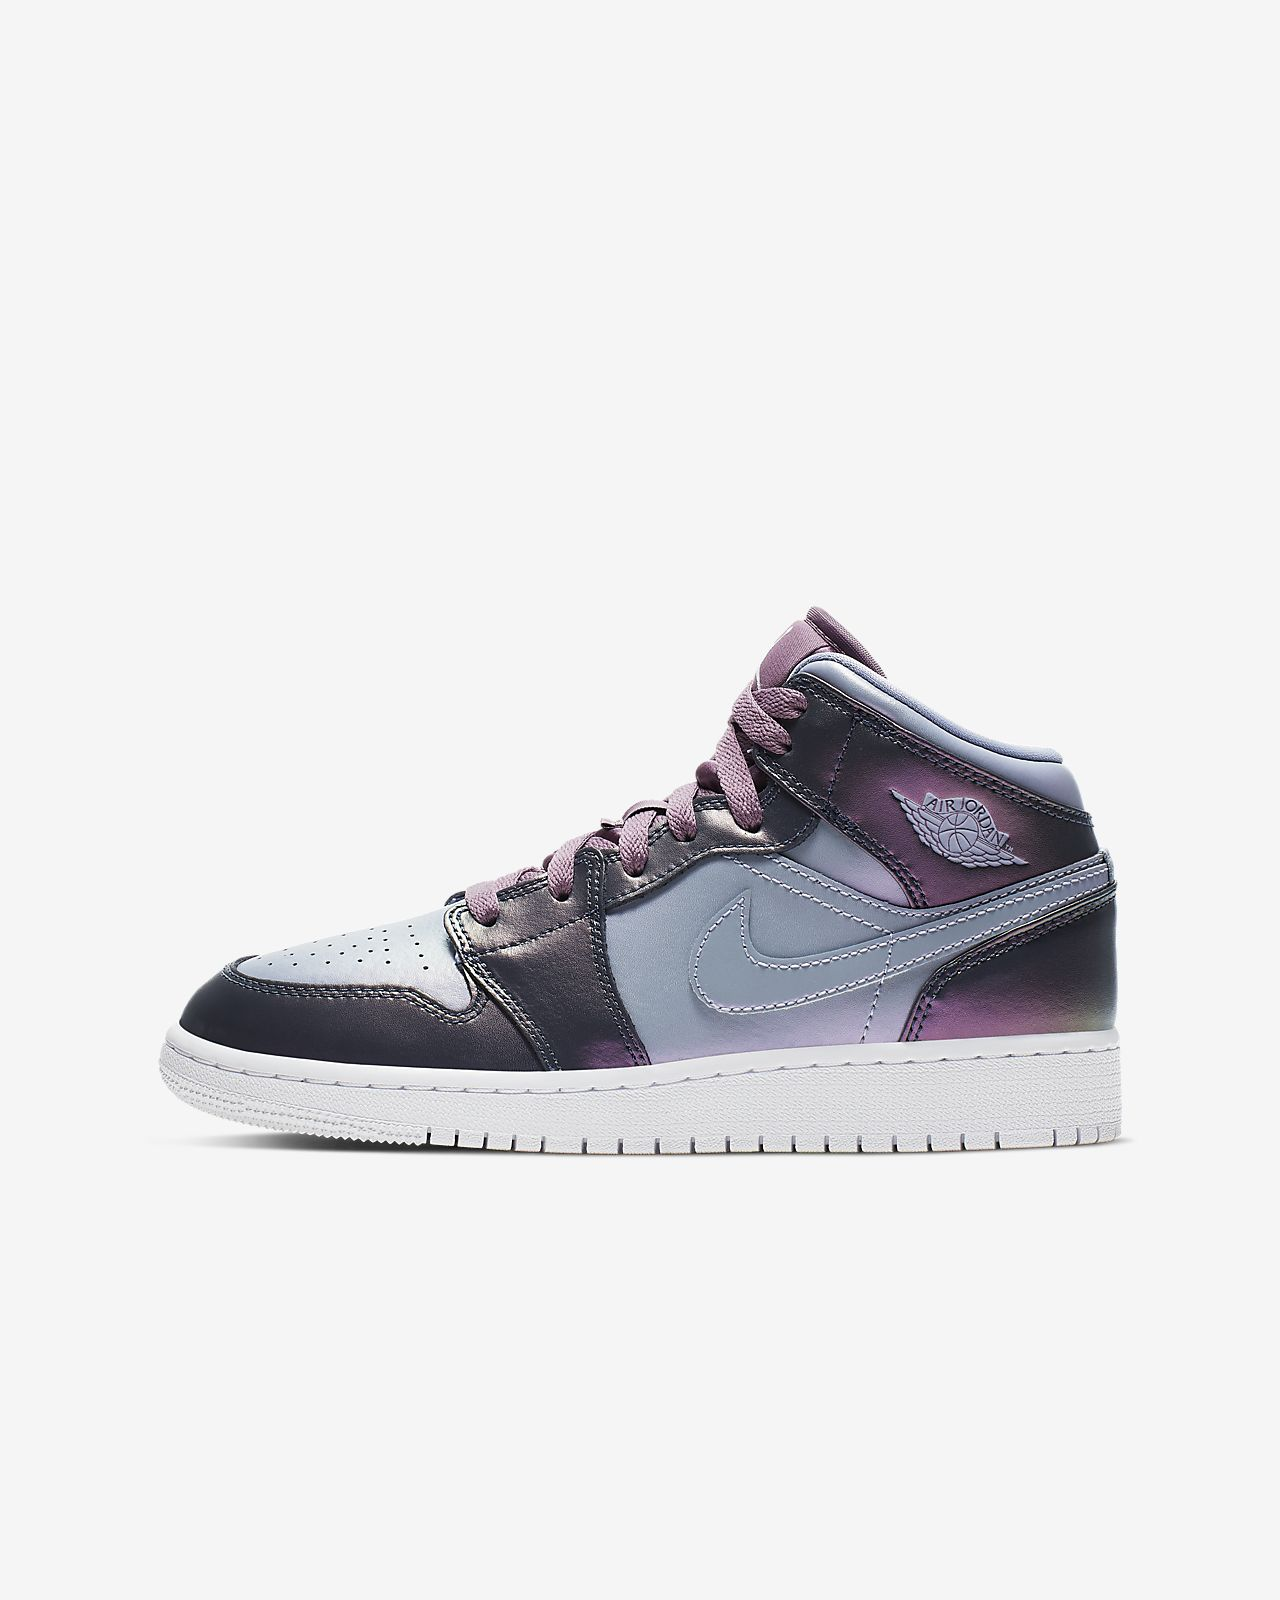 47806eca98cb0 Air Jordan 1 Mid SE Big Kids  Shoe (3.5y-9.5y). Nike.com